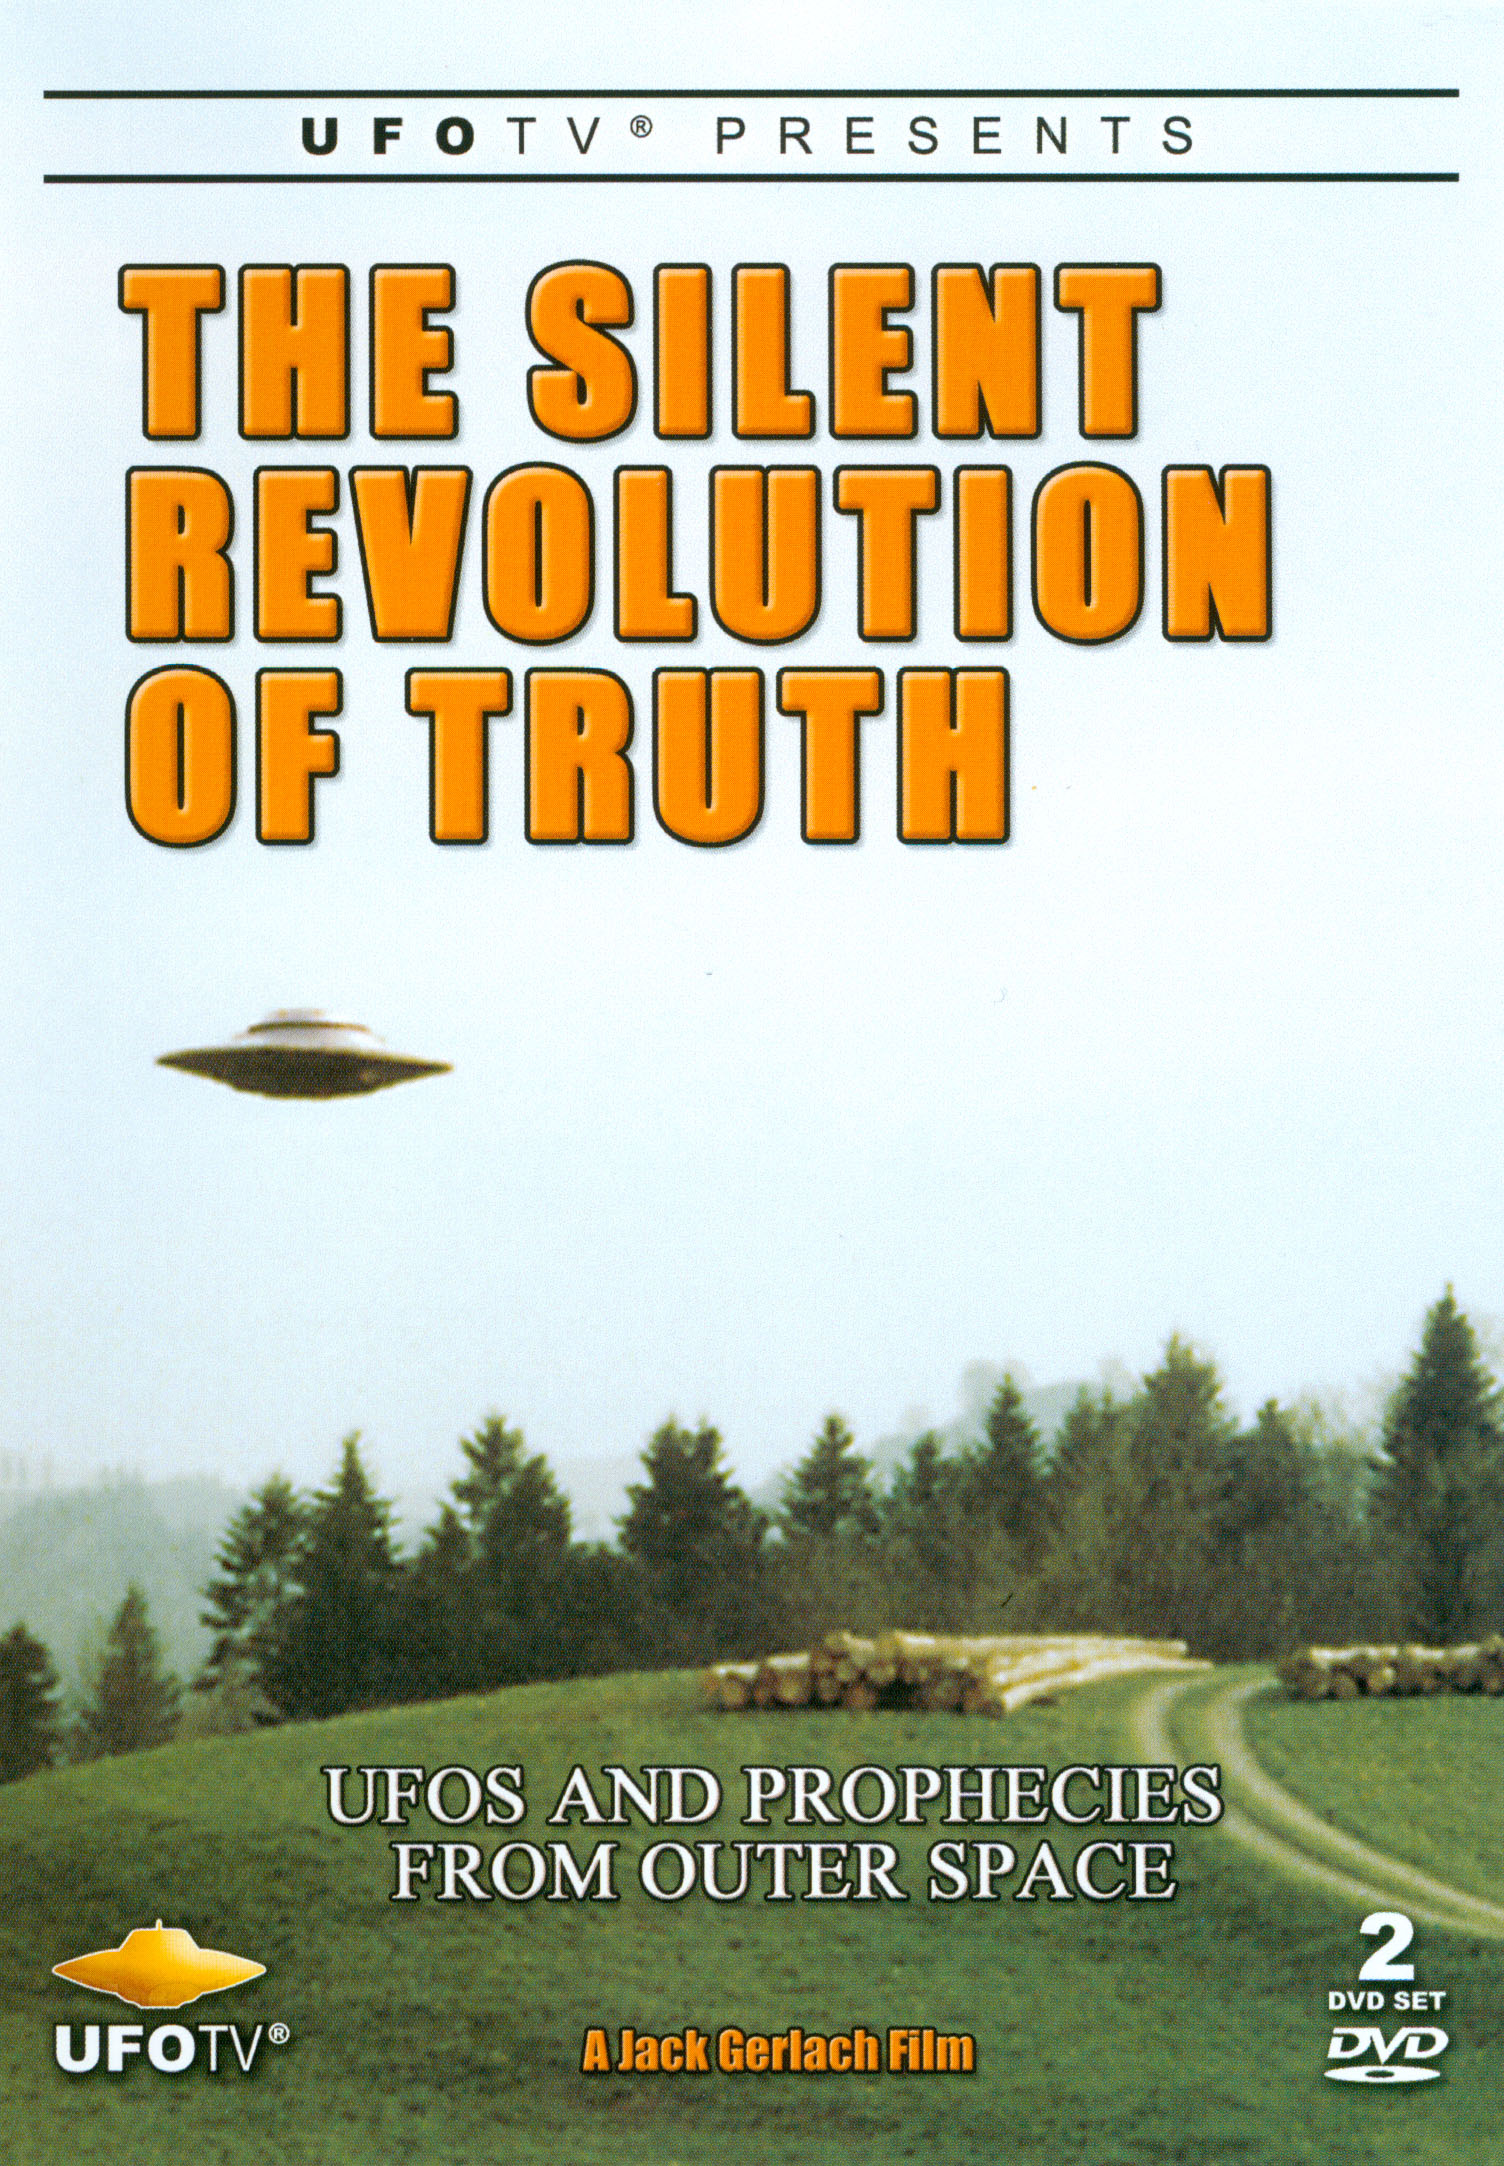 The Silent Revolution of Truth: UFOs and Prophecies from Outer Space